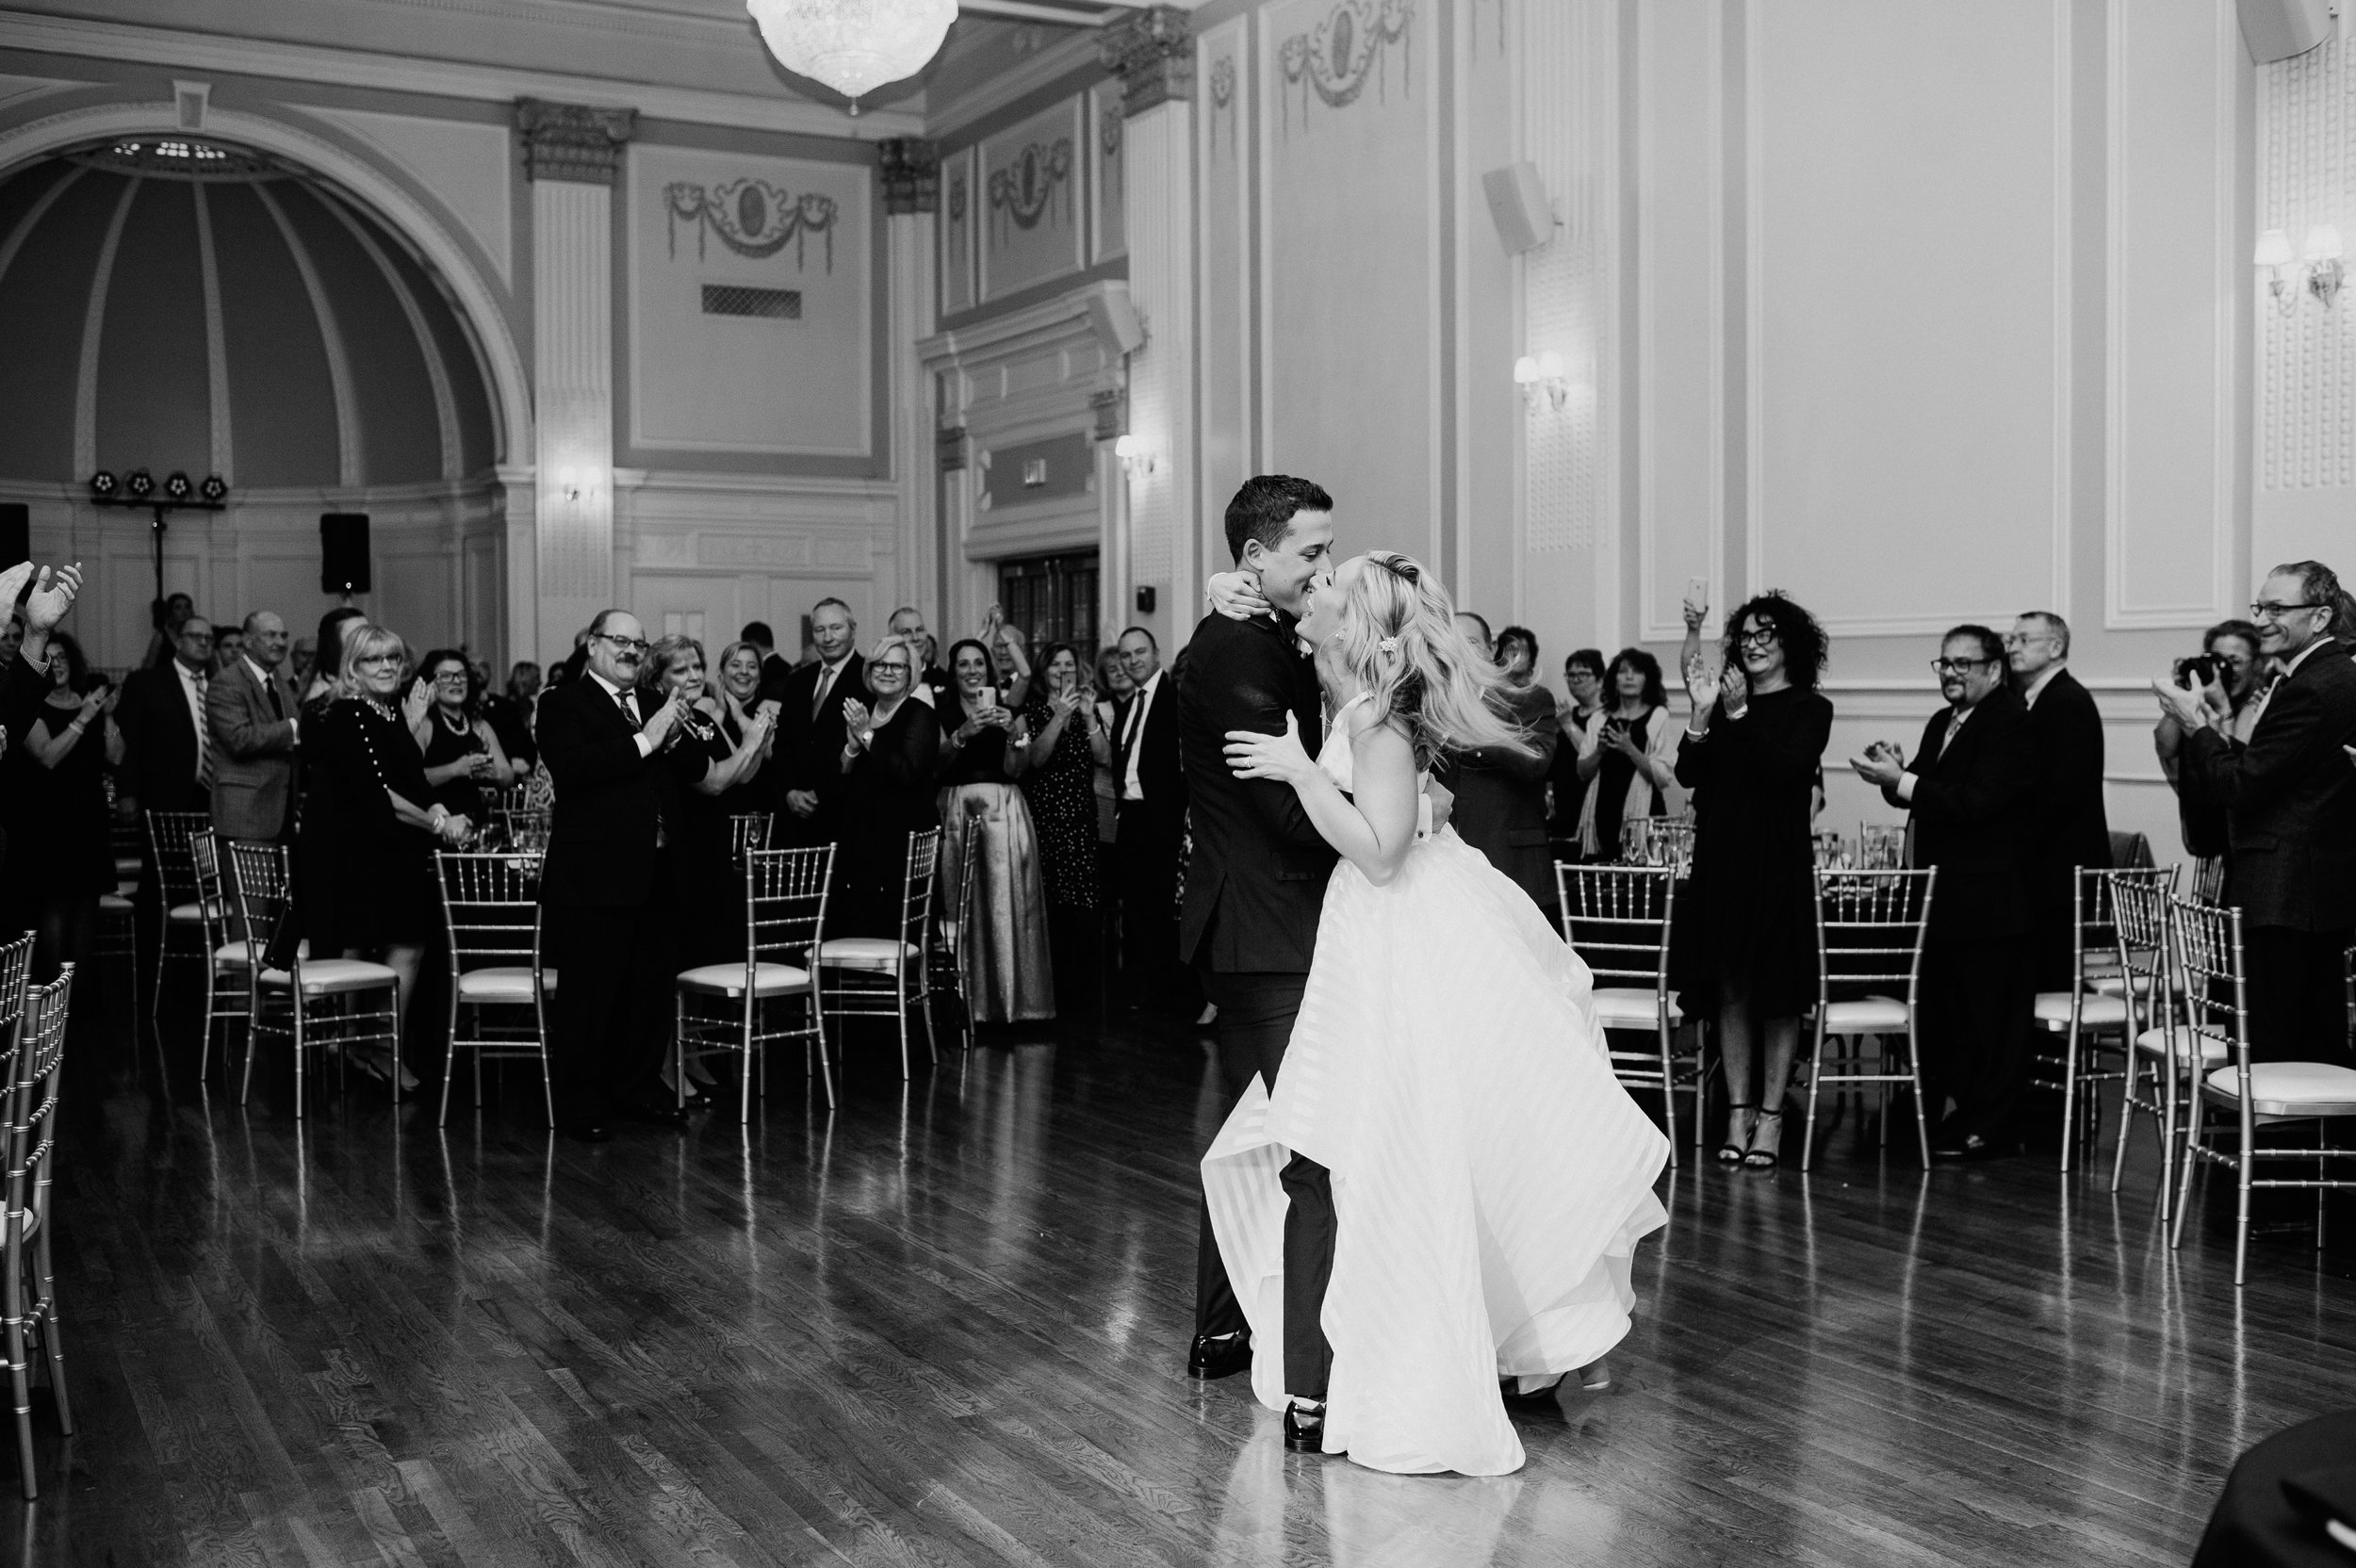 Bride and groom share their first dance for black, white, and gold wedding in Buffalo, NY planned by Exhale Events. Find more wedding inspiration at exhale-events.com!